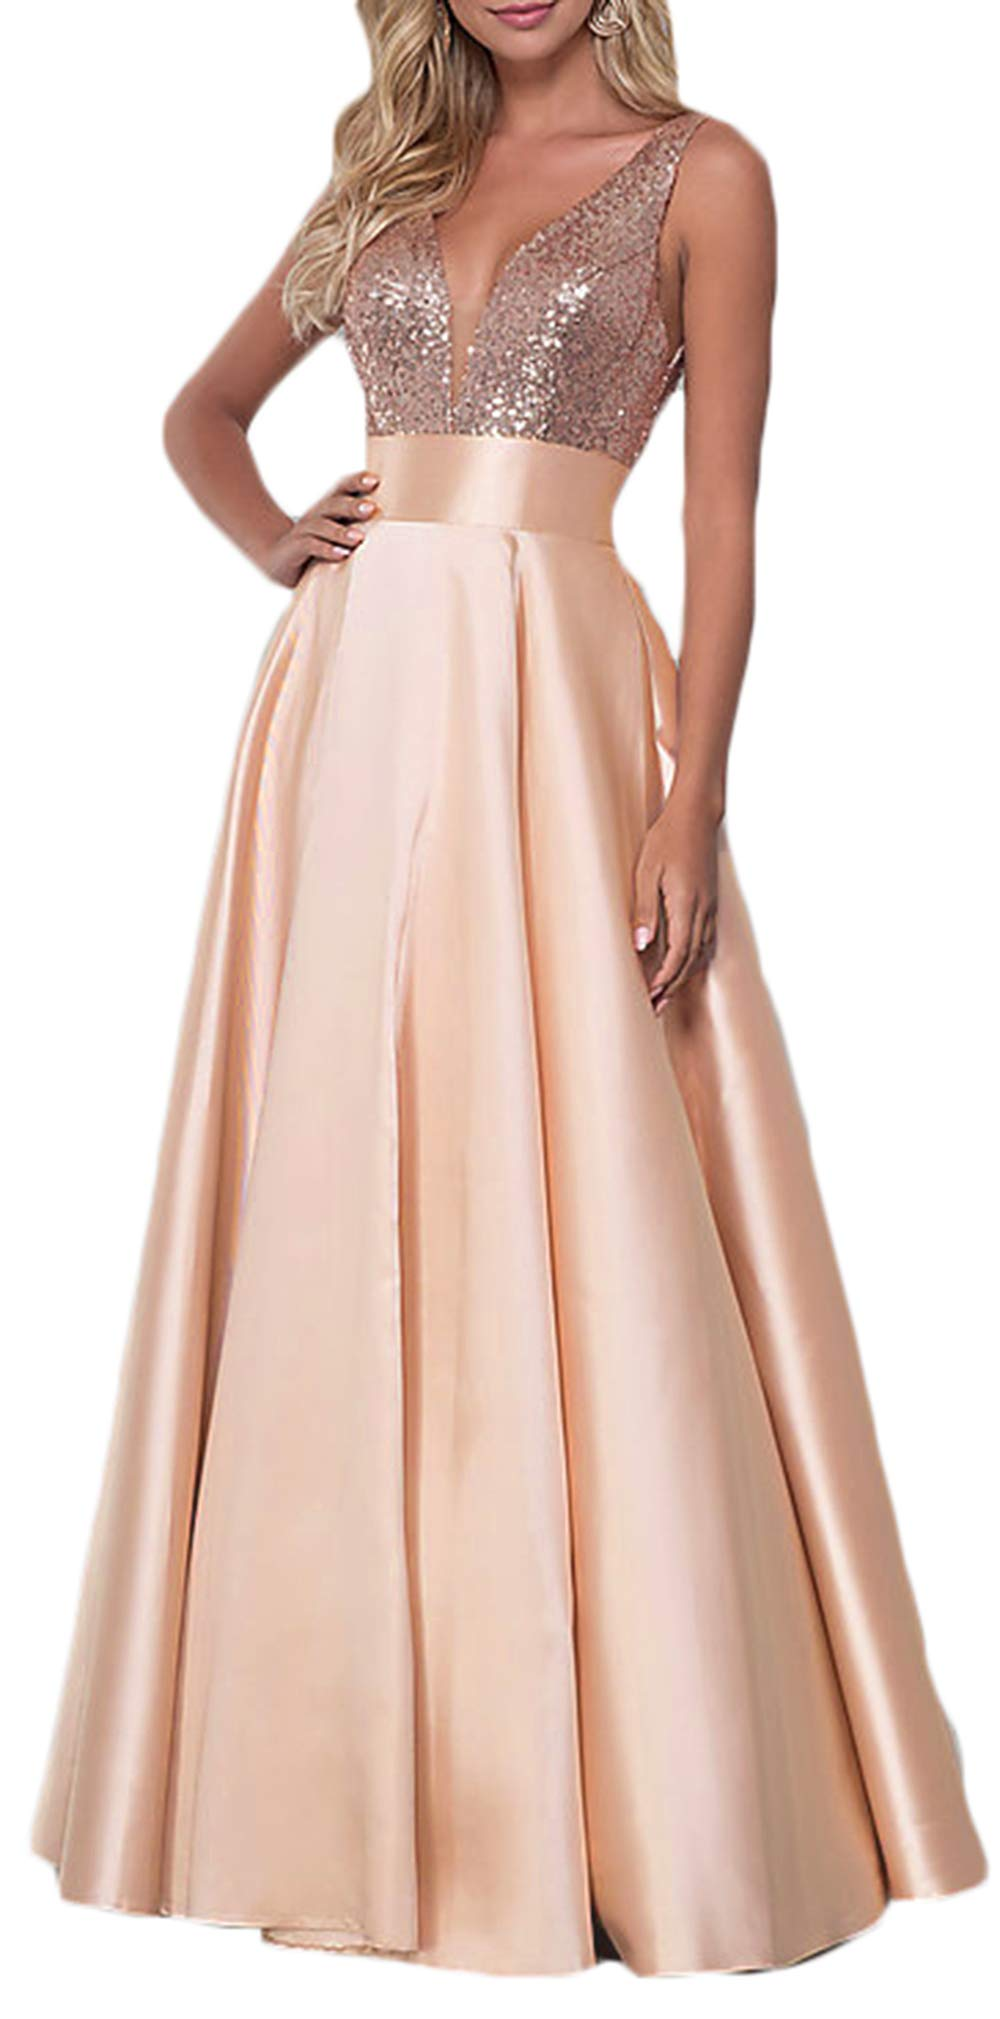 V Neck Prom Dress Long Sequins Satin Bridesmaid Dress Formal Evening Party Gowns For Women With Pockets